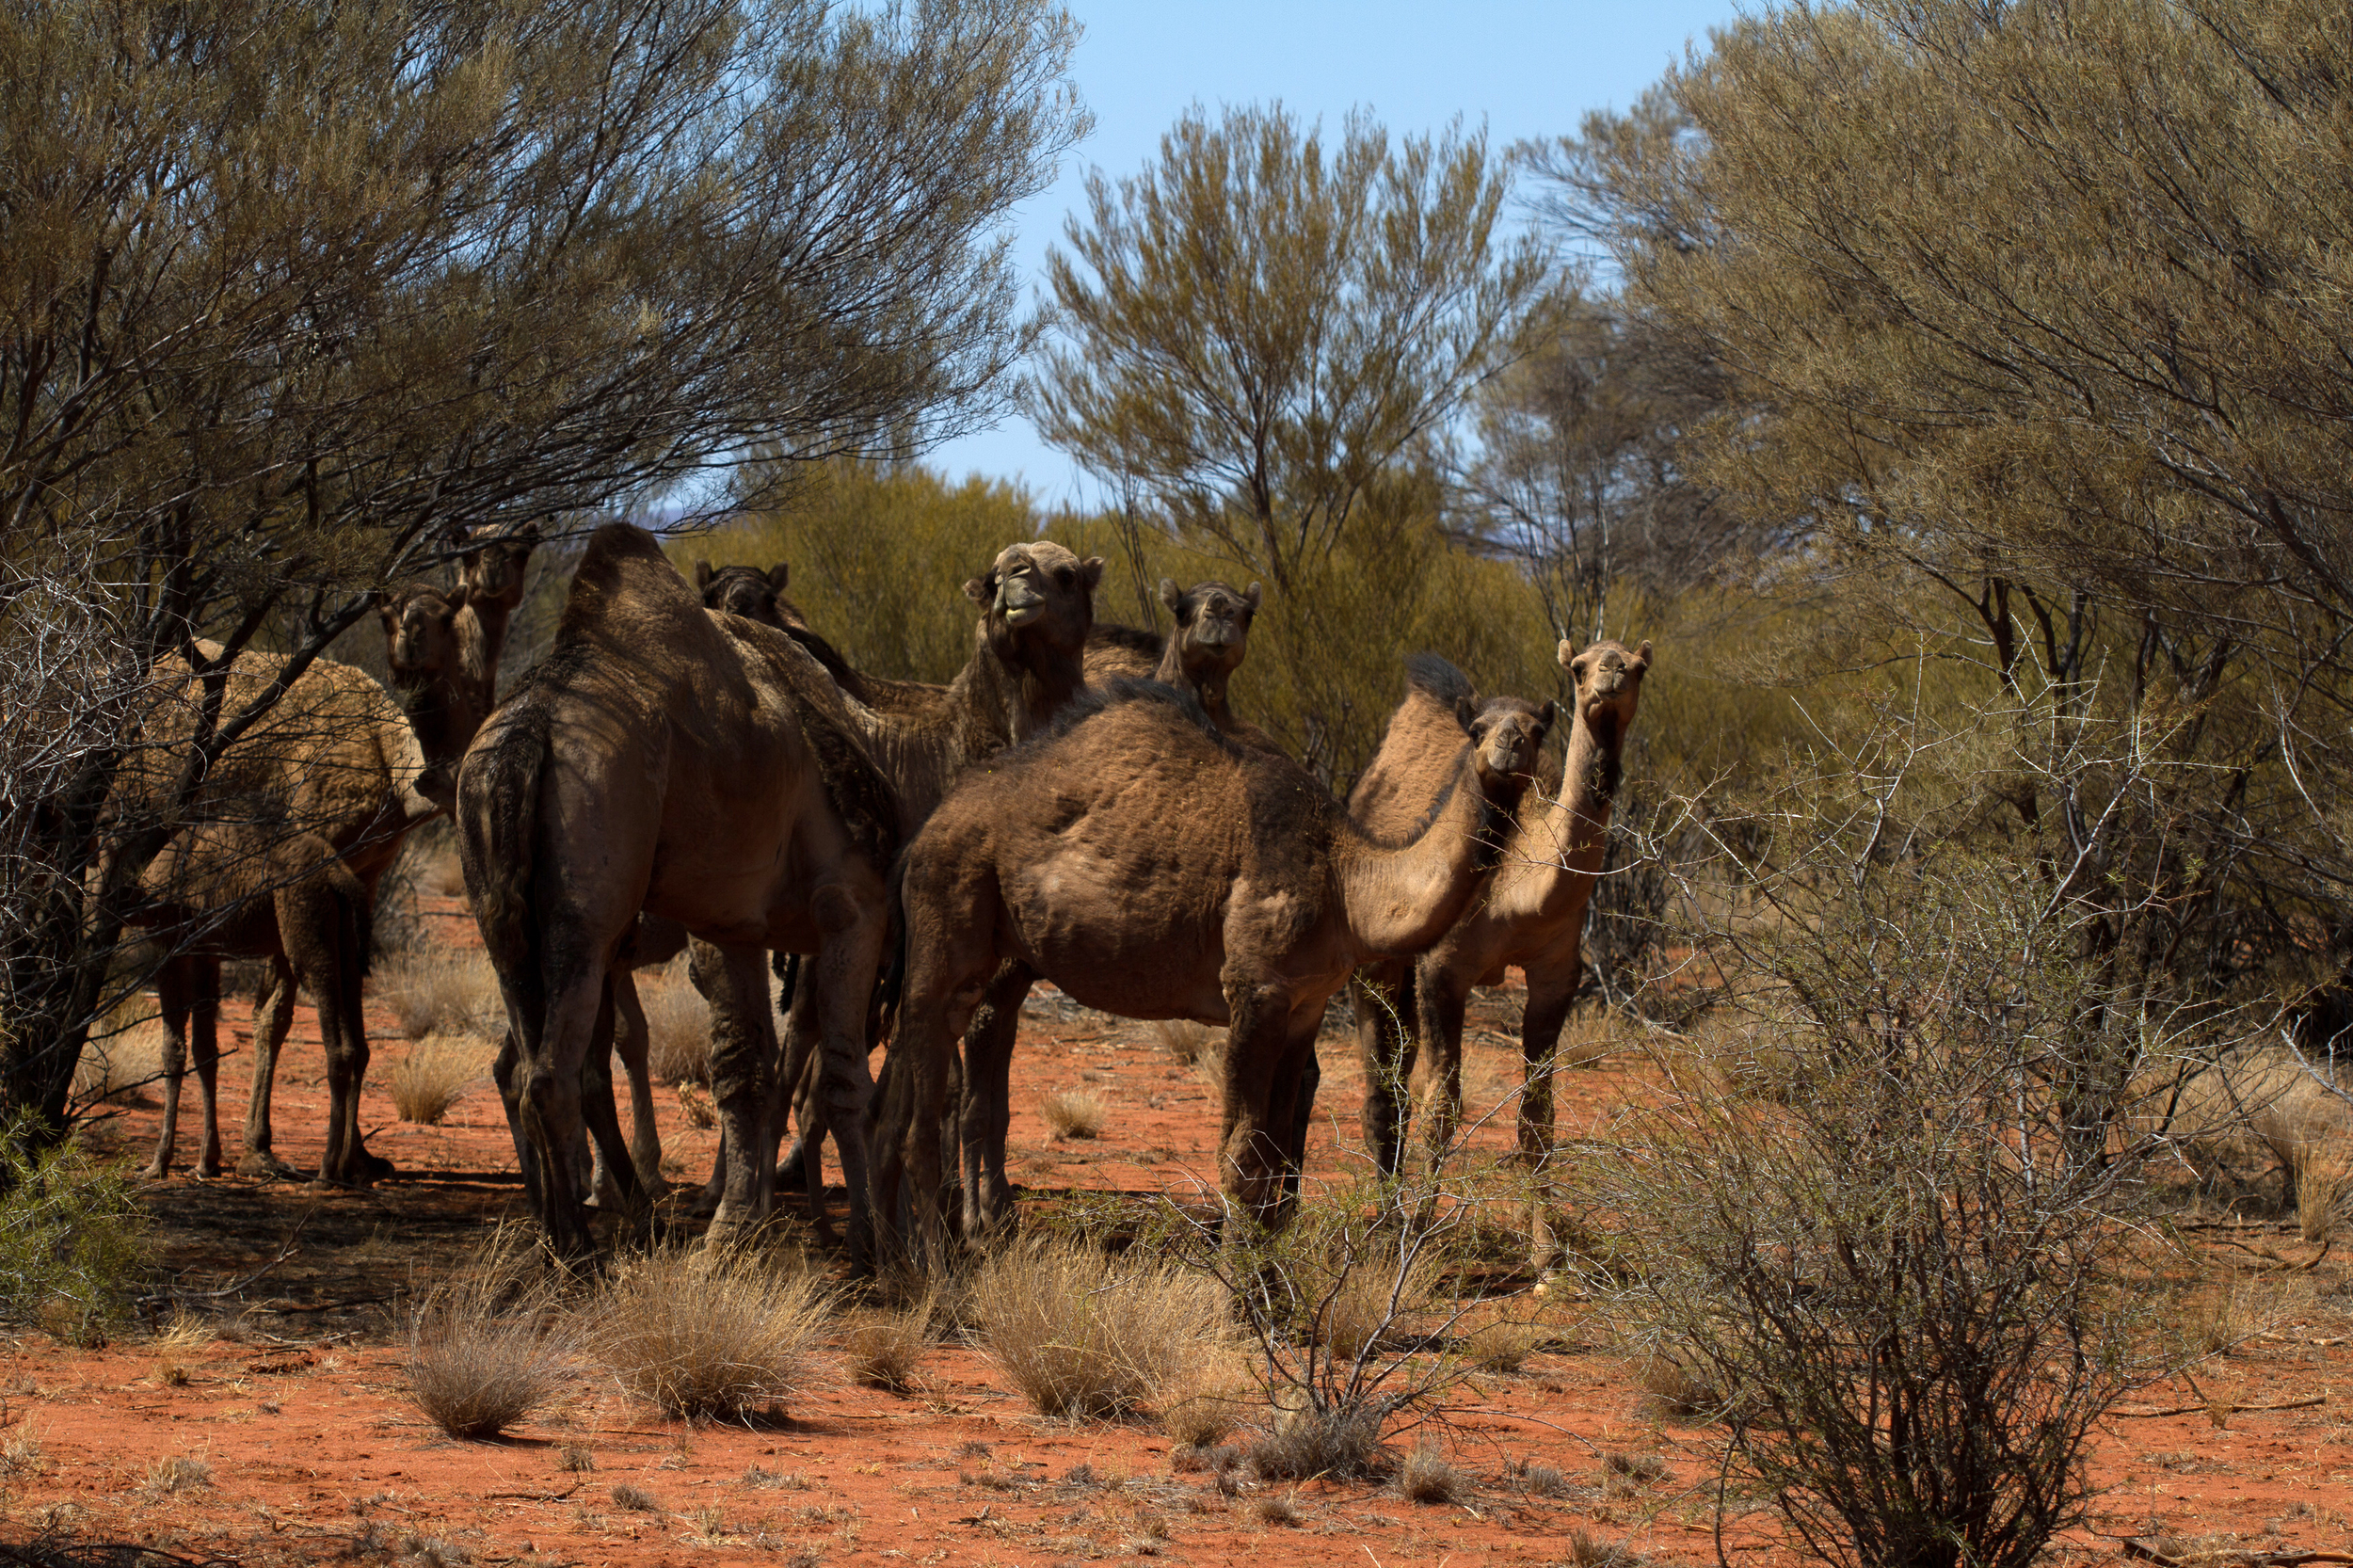 The male camel is the really big one to the left. Mulga Park Station, Northern Territory, 2012. Photo by Angus Kennedy.